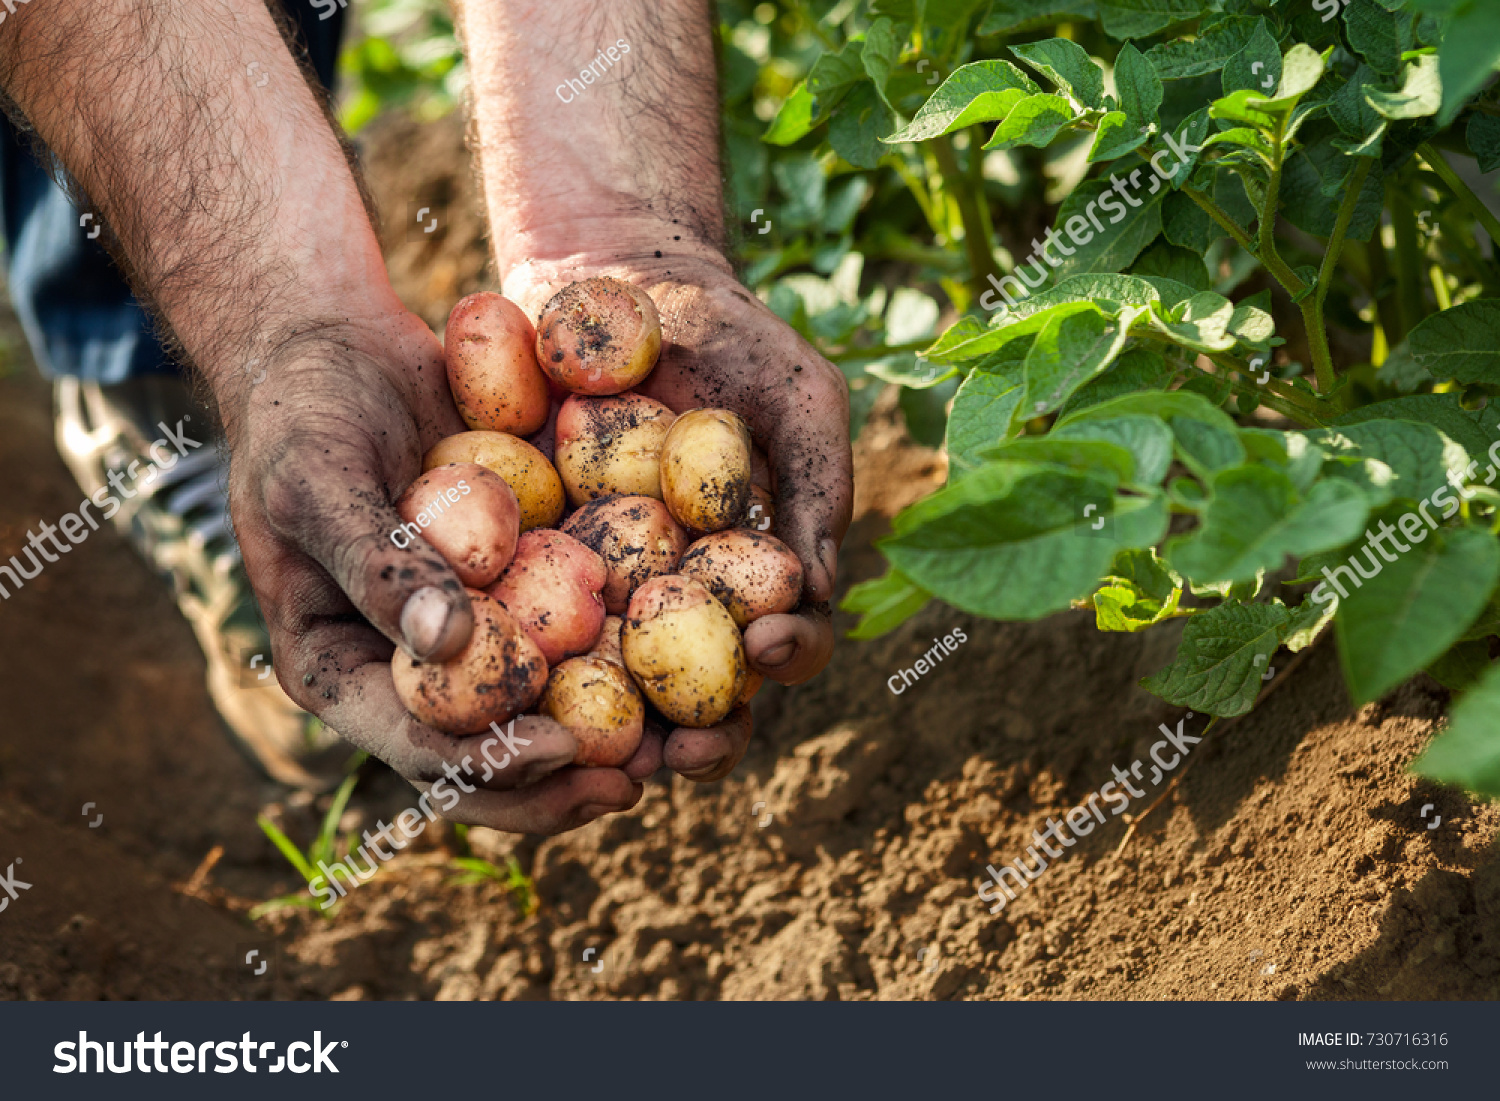 Raw Potato Hands Gardener Potato Harvest Garden Stock Photo (Royalty ...